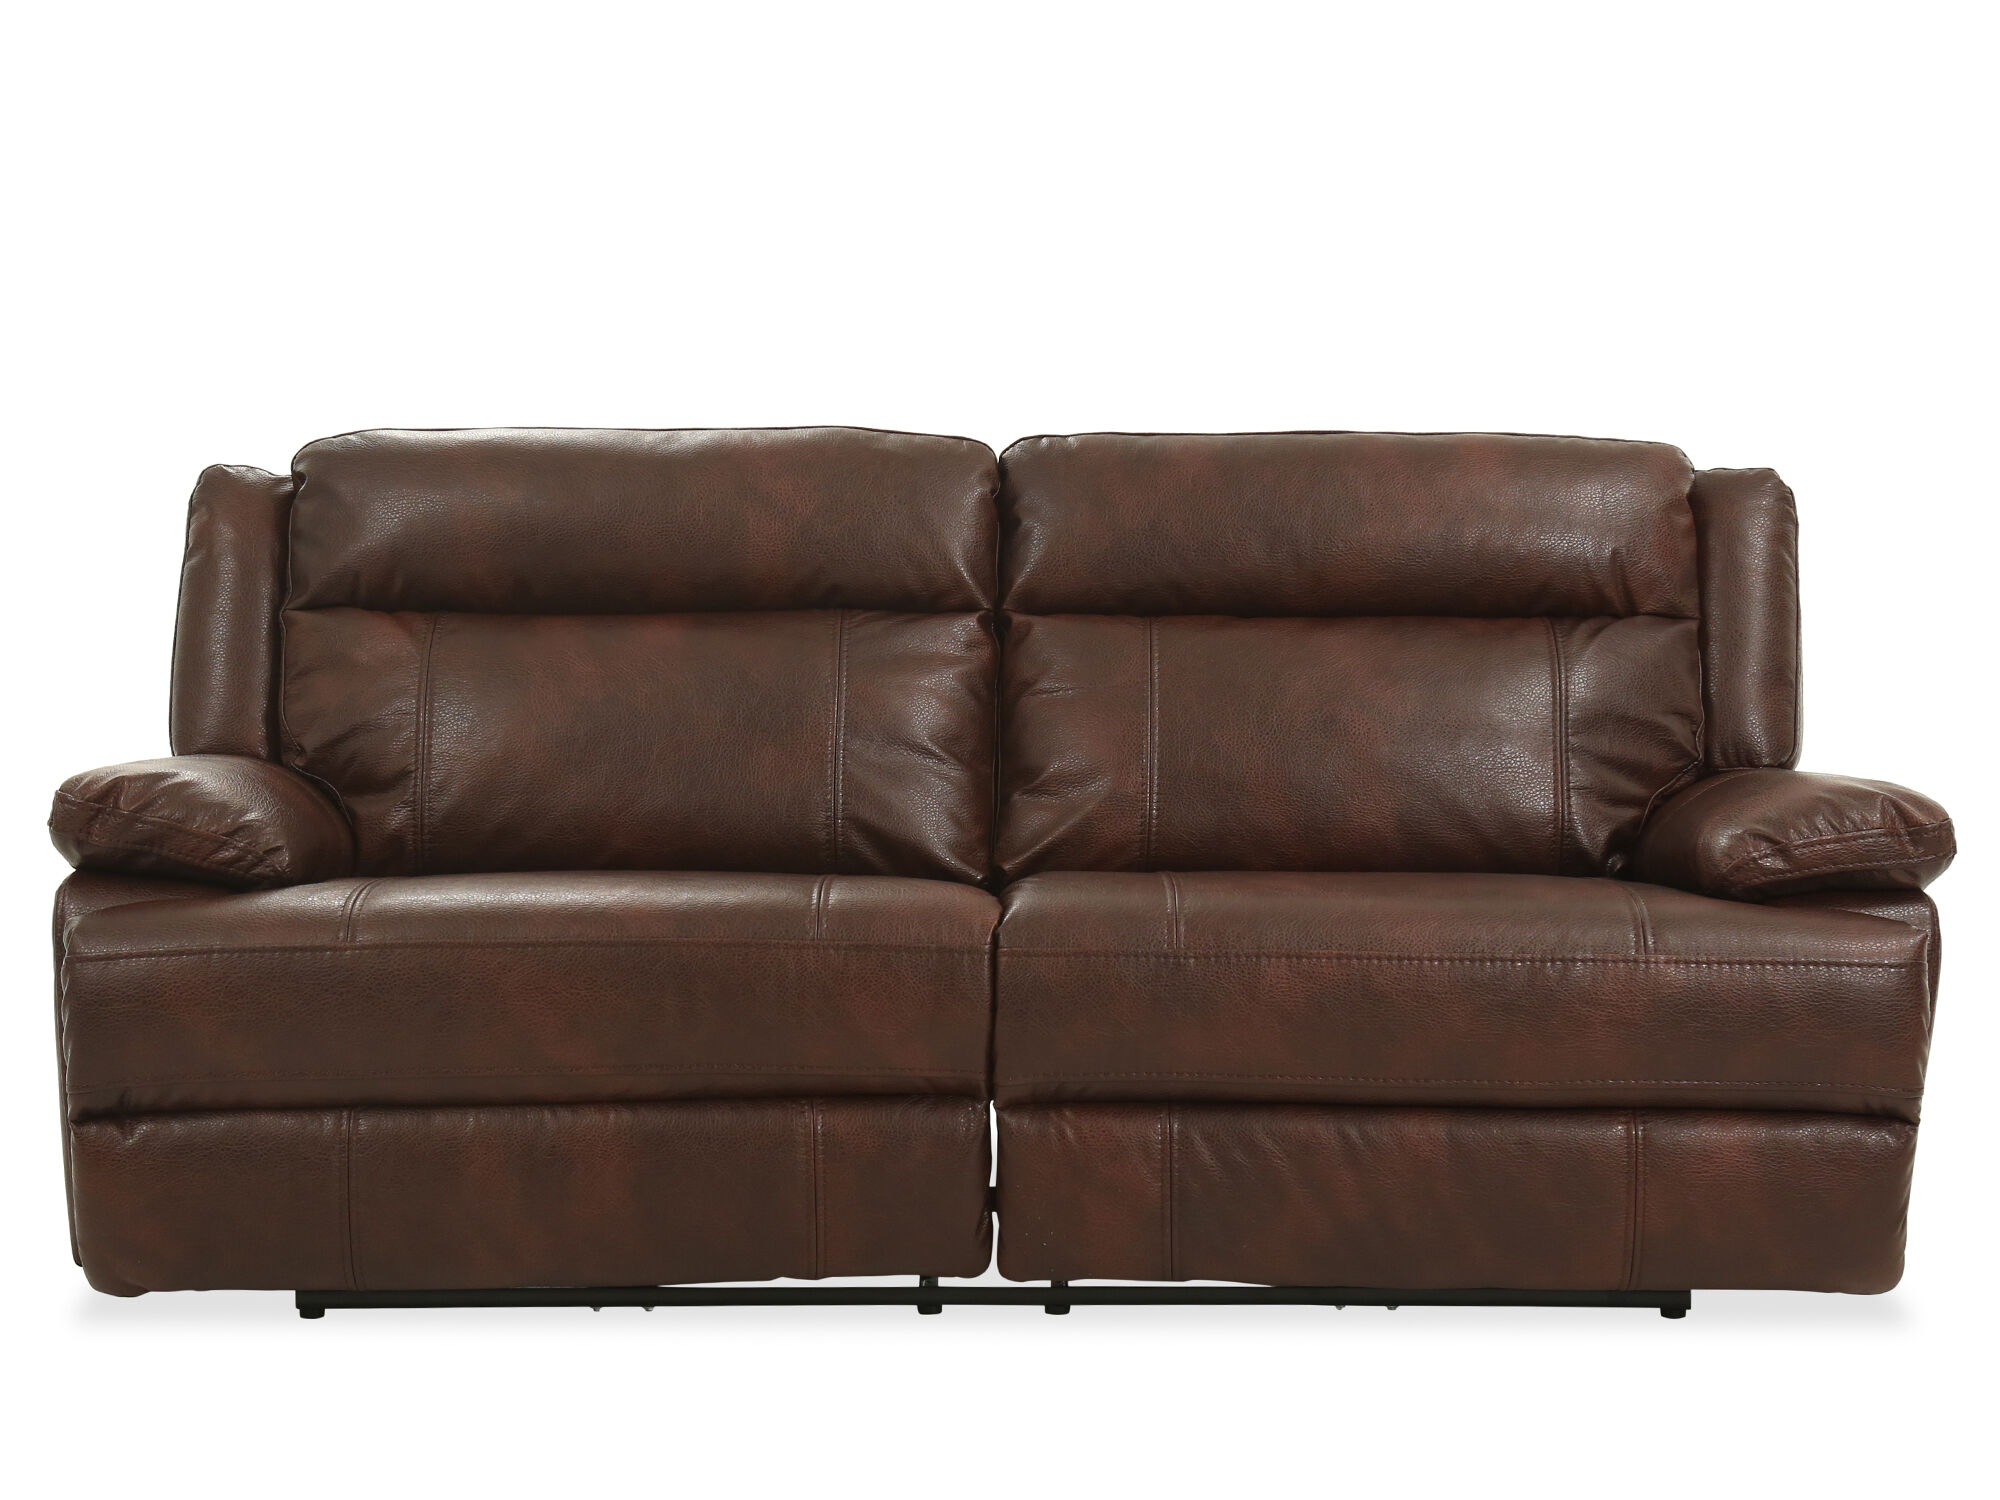 90 Quot Power Reclining Sofa In Brown Mathis Brothers Furniture